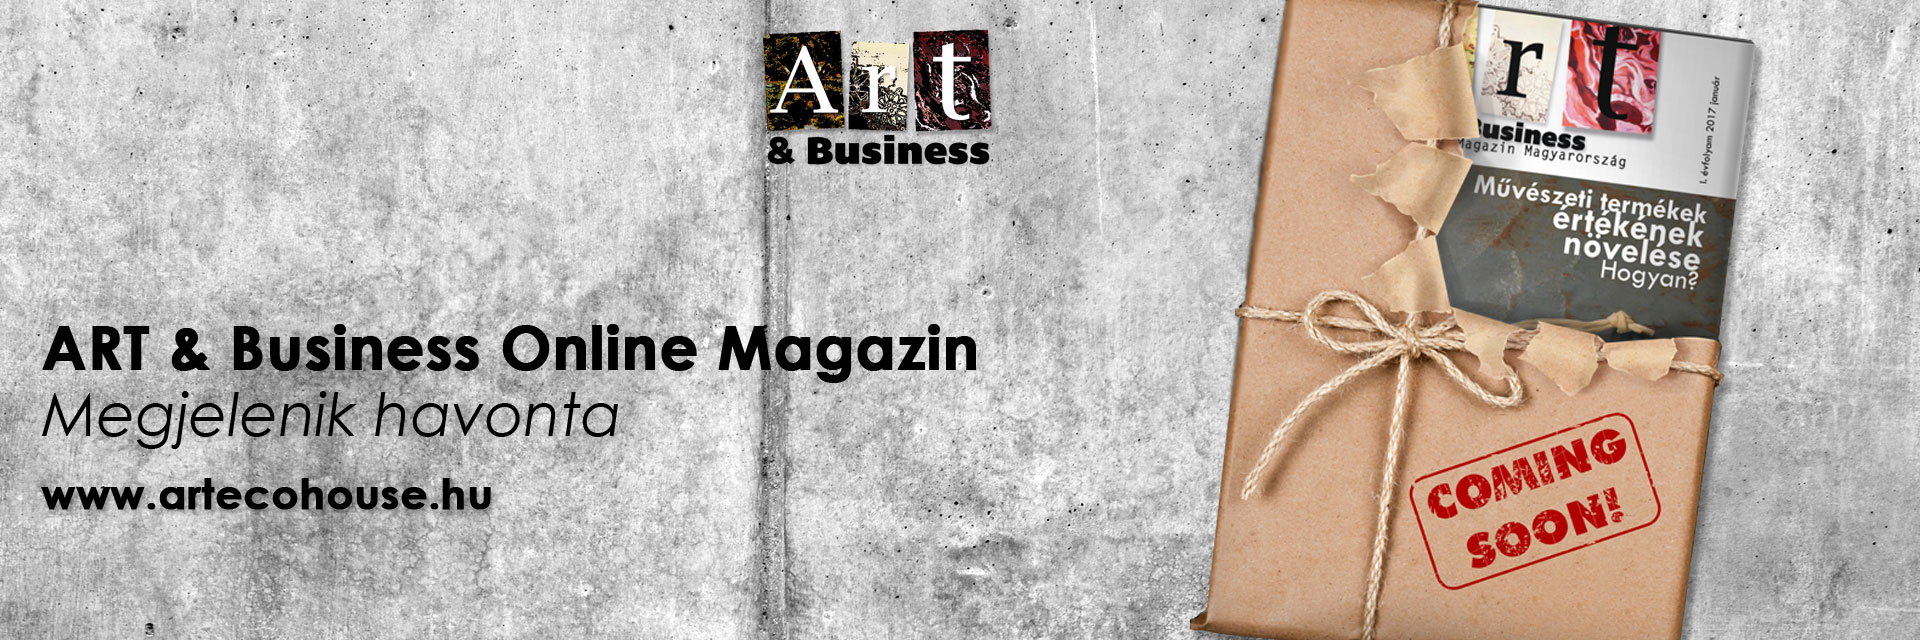 ART & BUSINESS ONLINE MAGAZIN